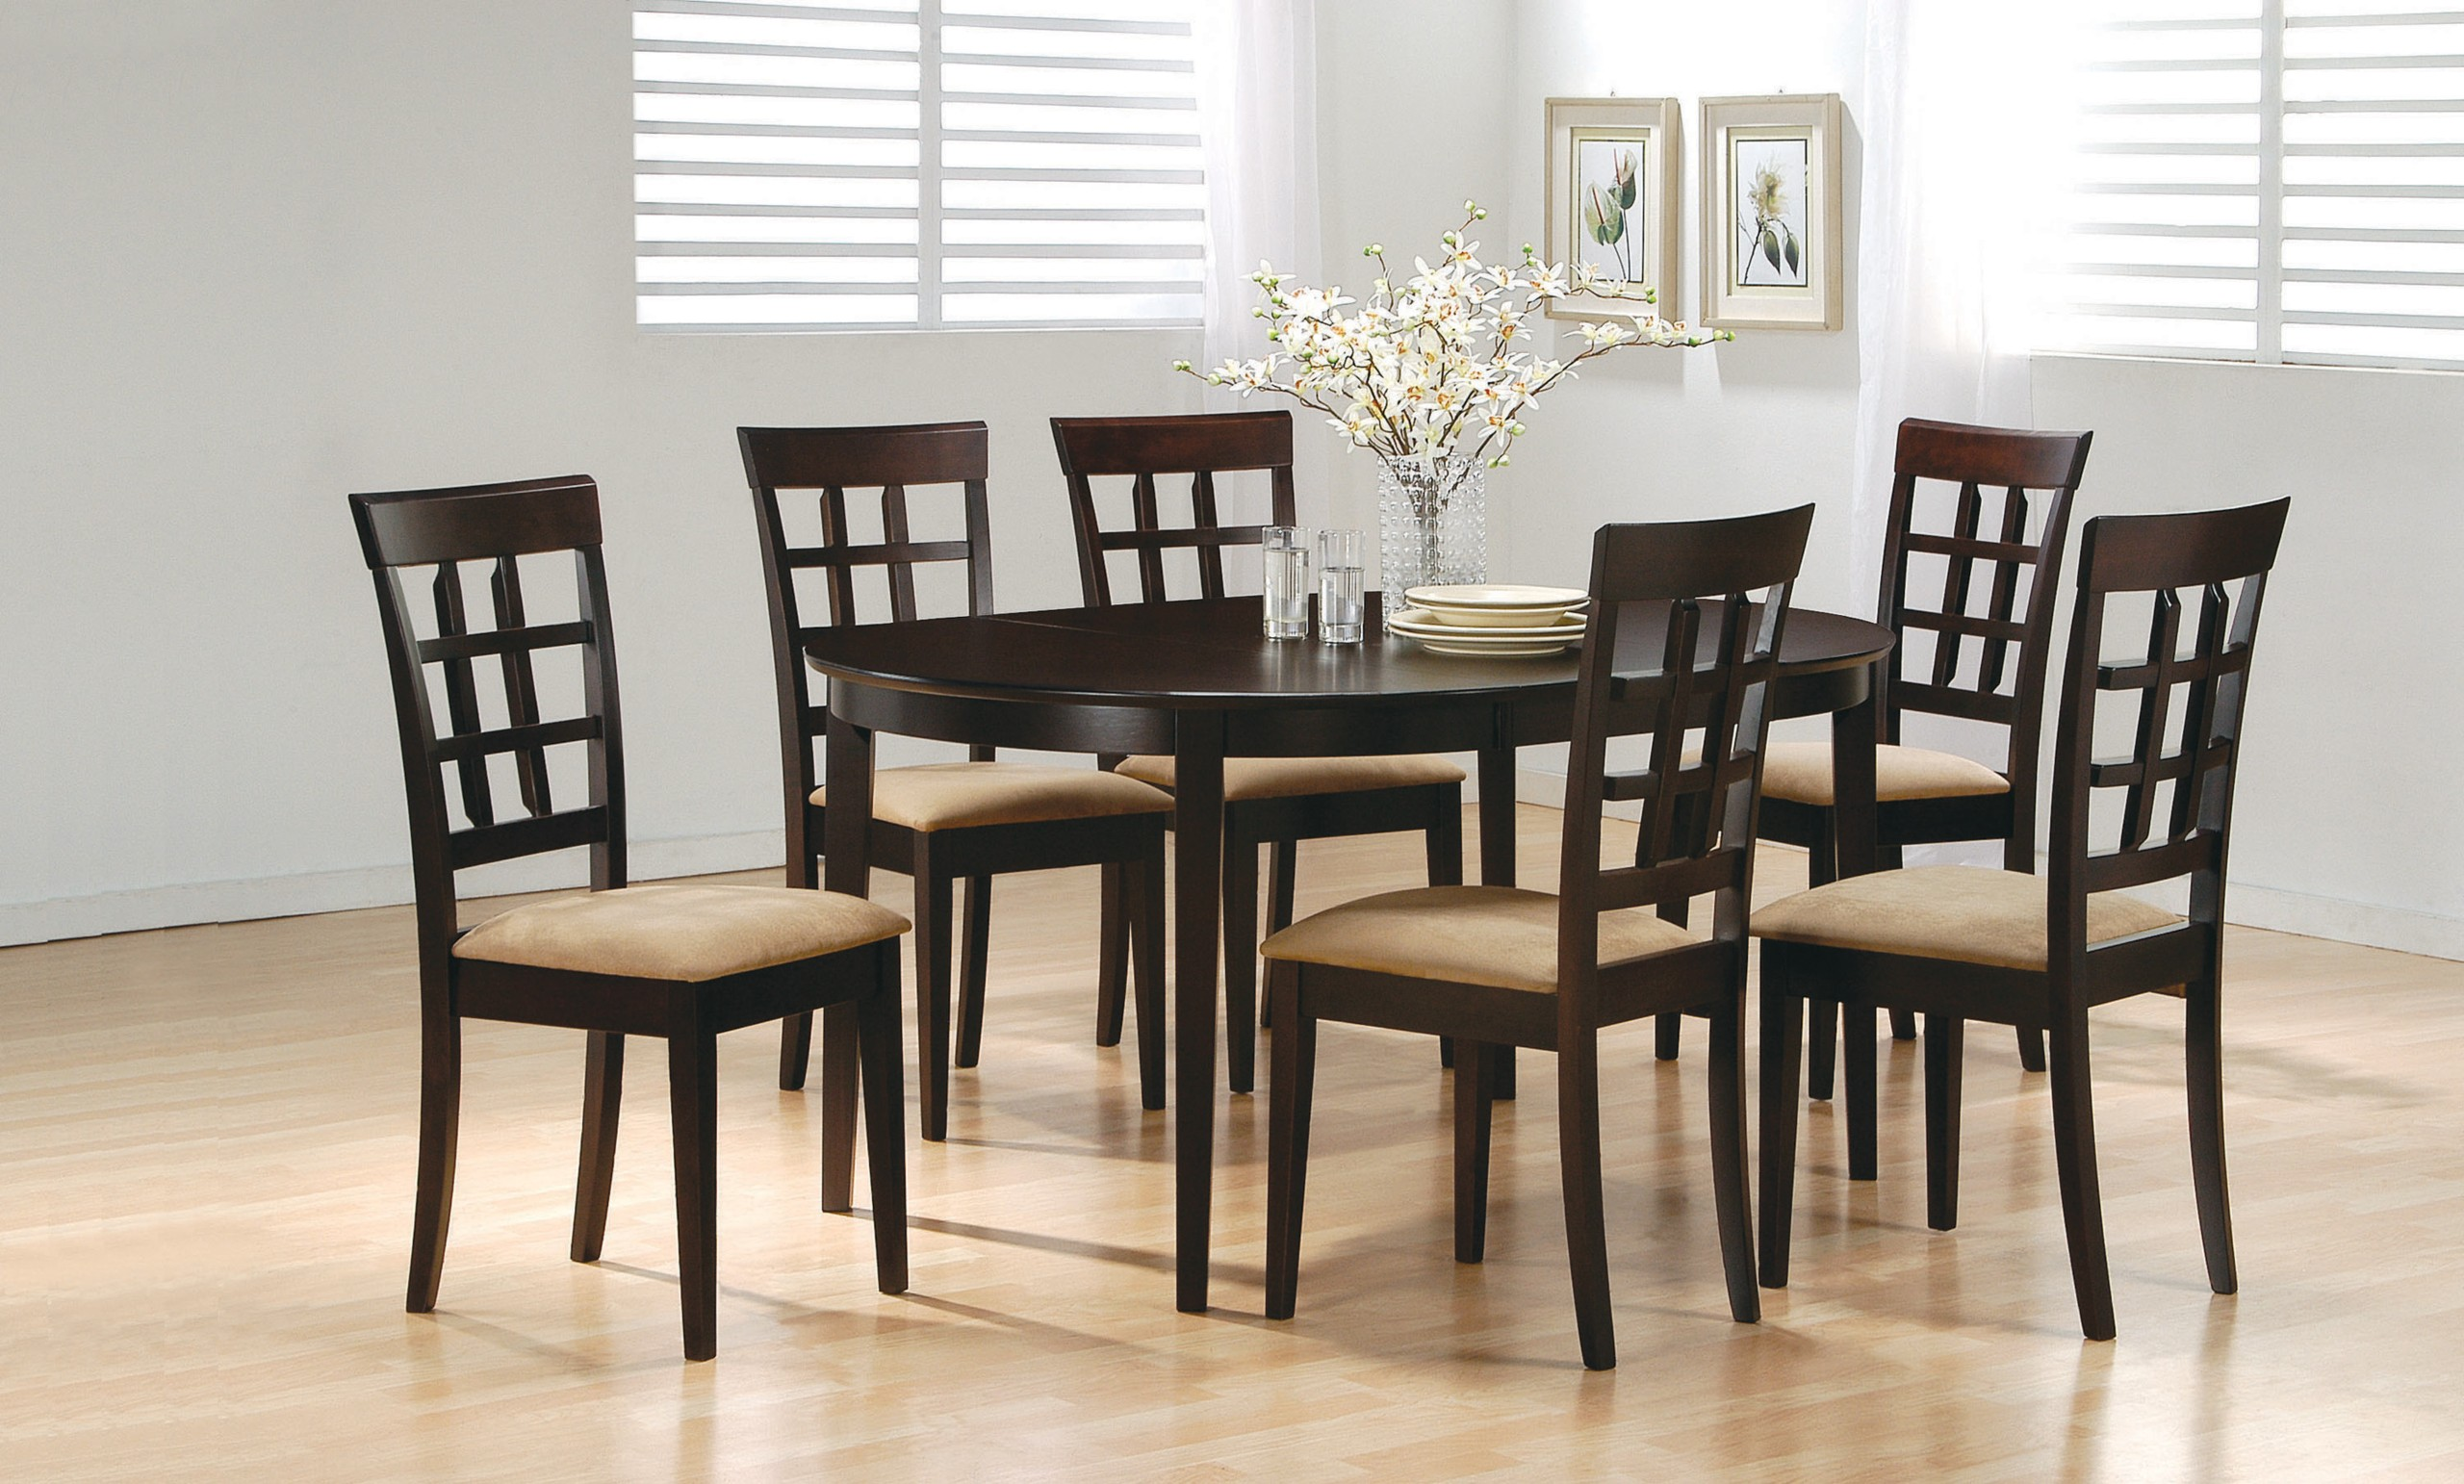 Beau Coaster Contemporary Style Dining Chairs, Cappuccino Wood Finish, Set Of 2